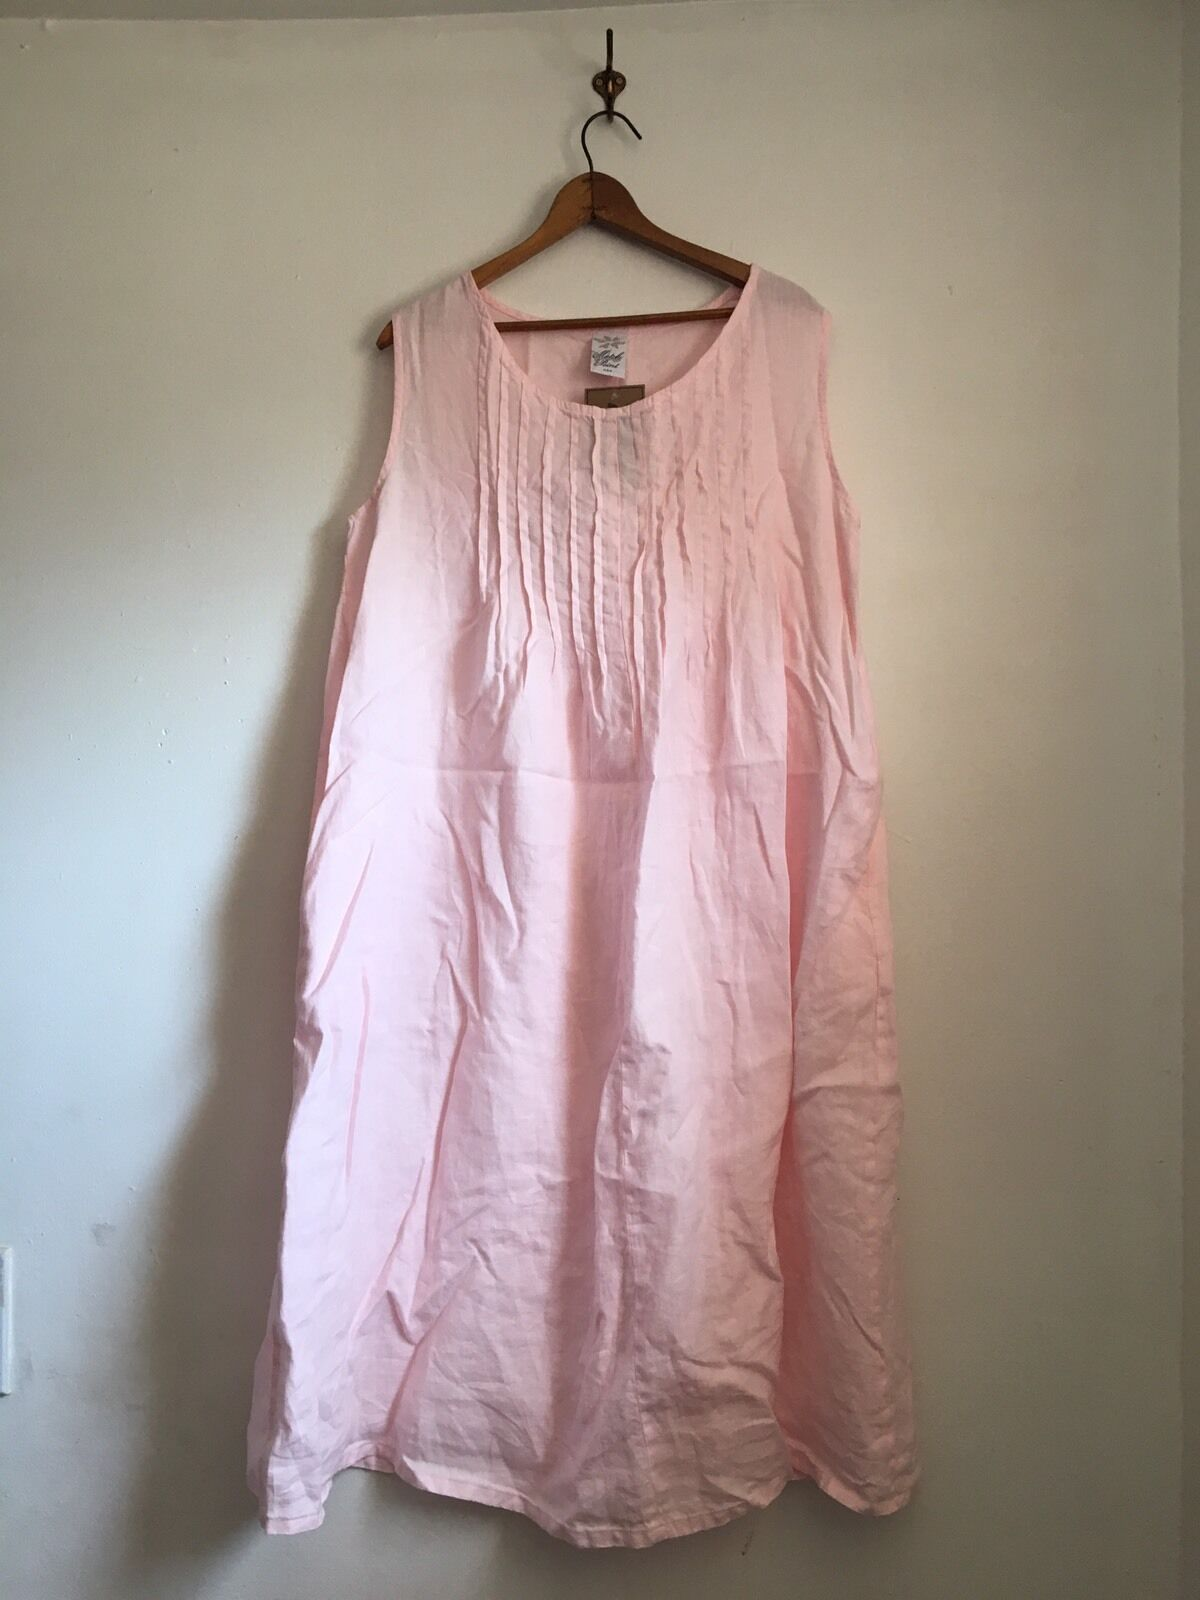 Match Point Linen Rosa Dress Pintuck Pintuck  Pintucked Pleat Pleated Tank Sun